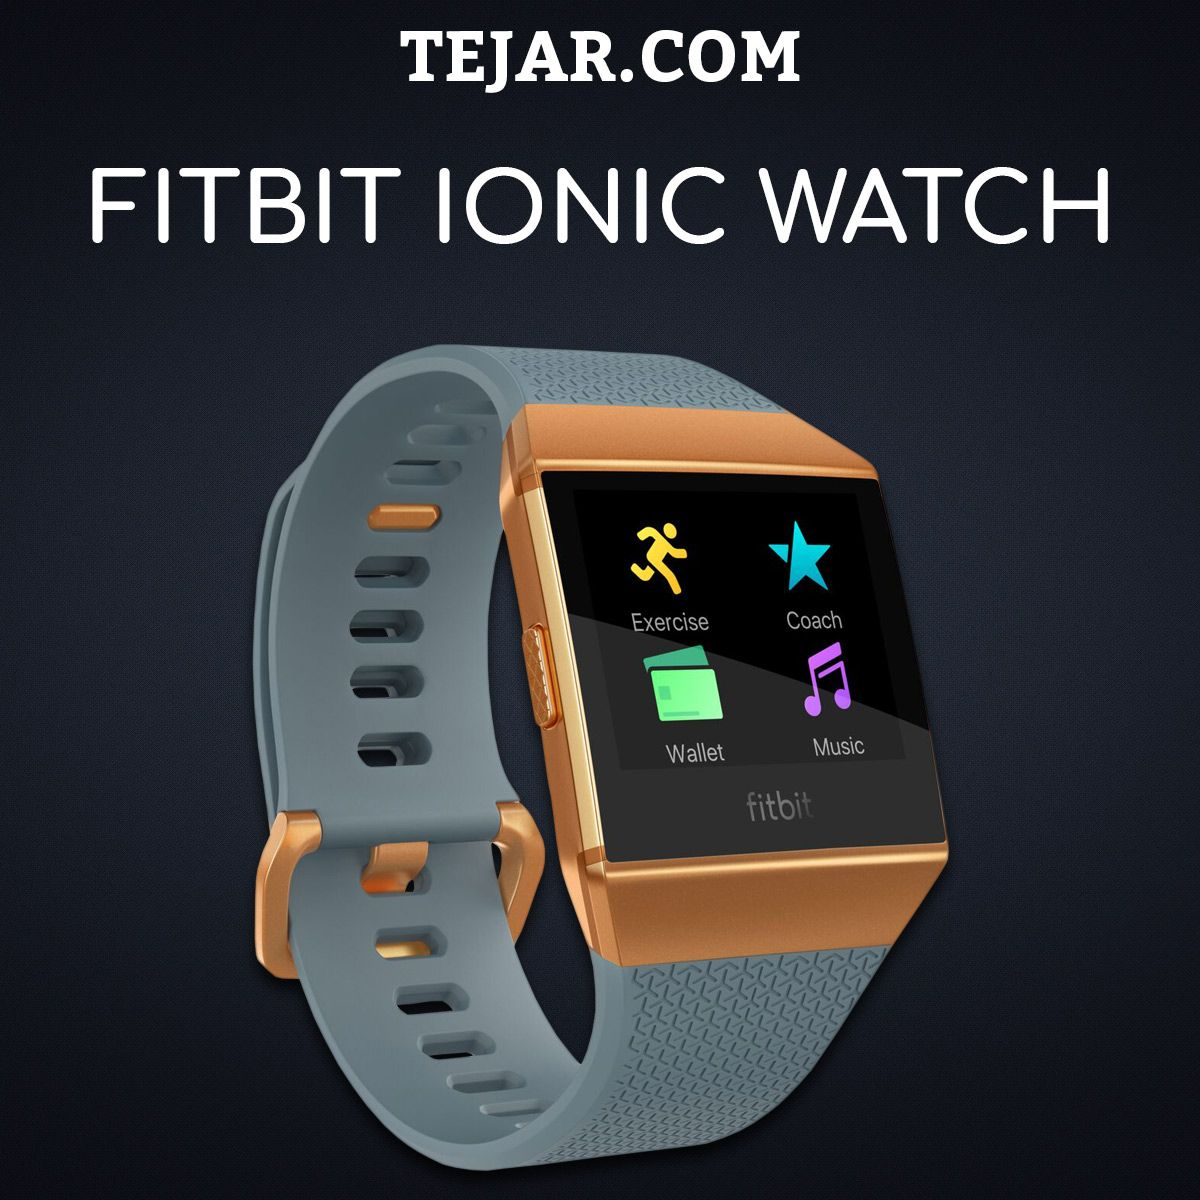 Fitbit Ionic Watch | Watches | Fitbit, Workout stations, Fitbit app